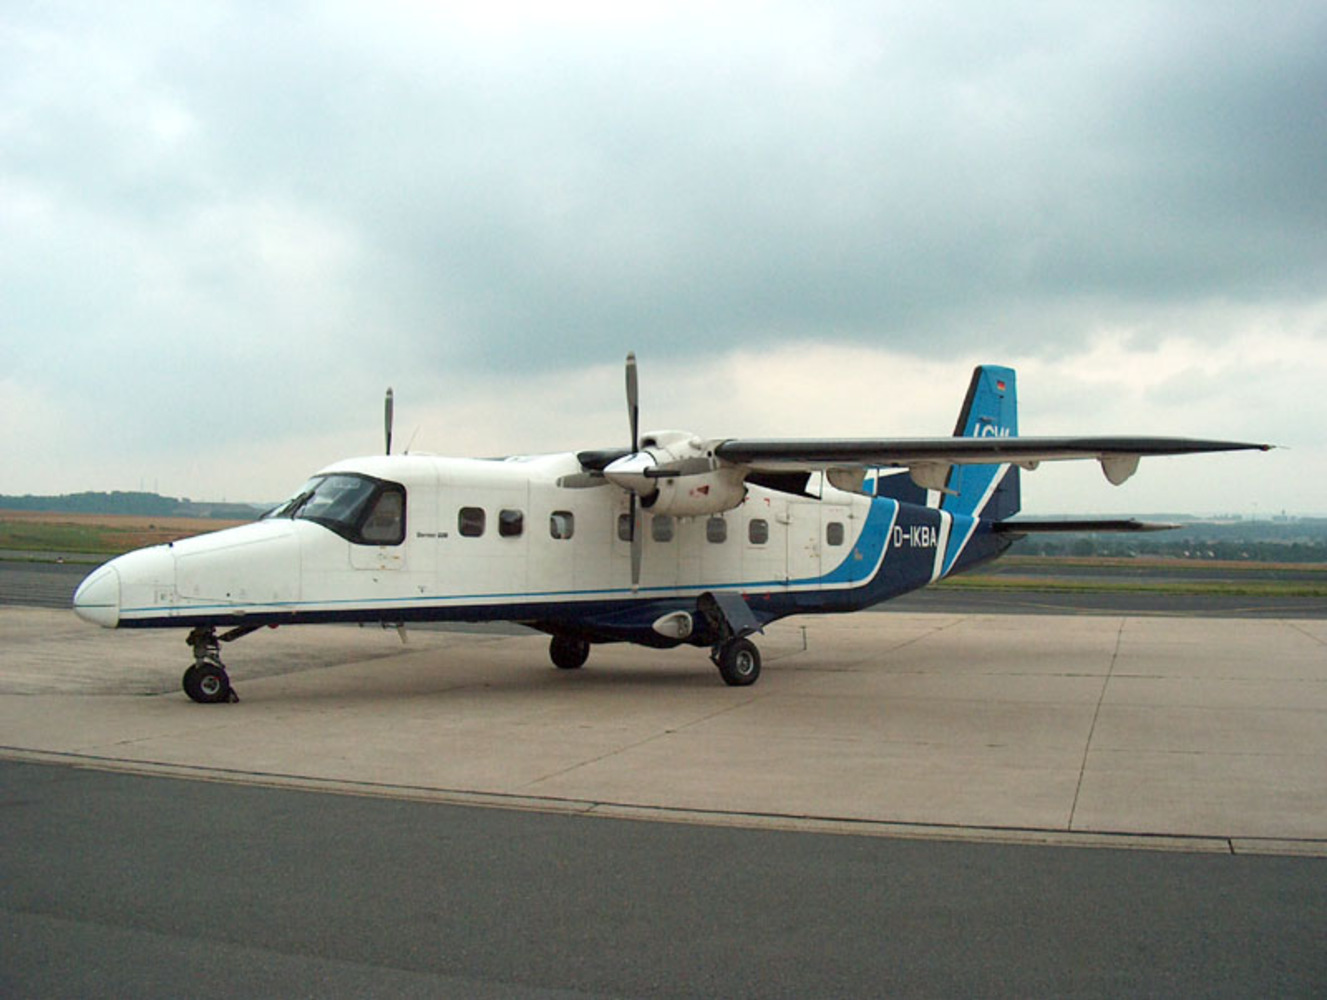 Dornier Do 228-200 twin-turboprop aircraft